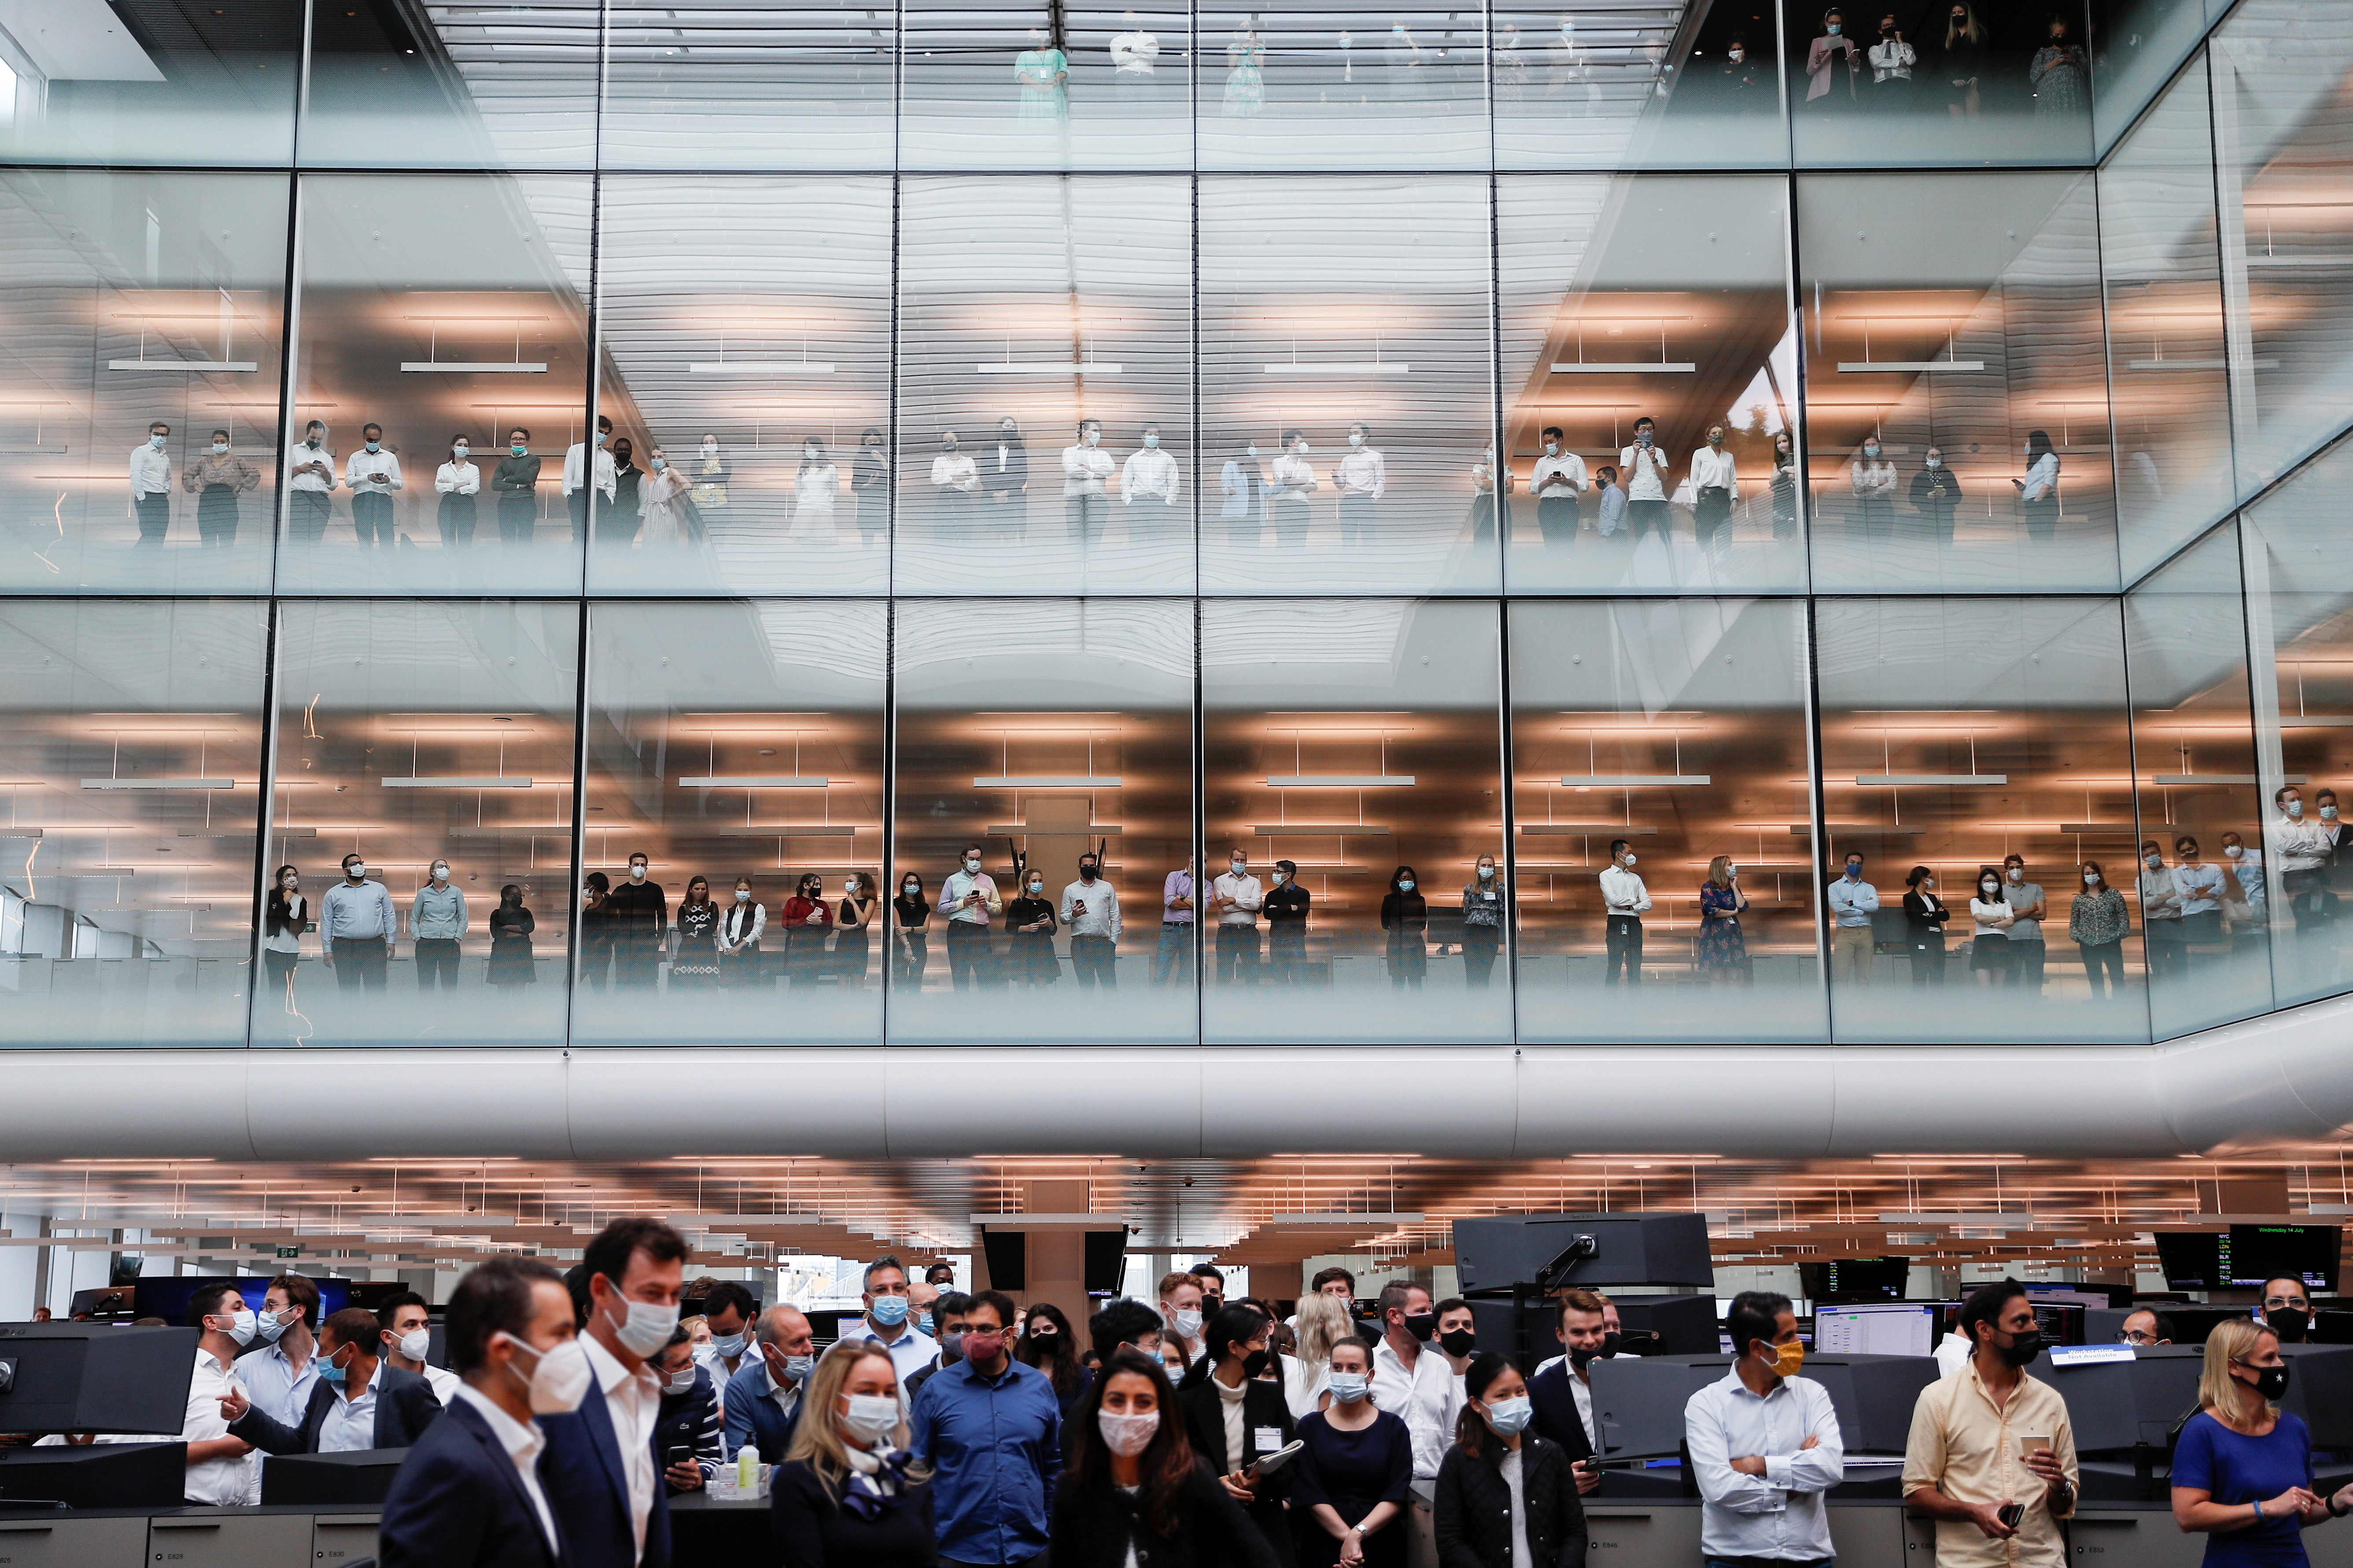 <p>Staff members watch during a visit by the Prince of Wales to Goldman Sachs in central London, to recognise the firm's commitment to the UK. Picture date: Wednesday July 14, 2021.</p>